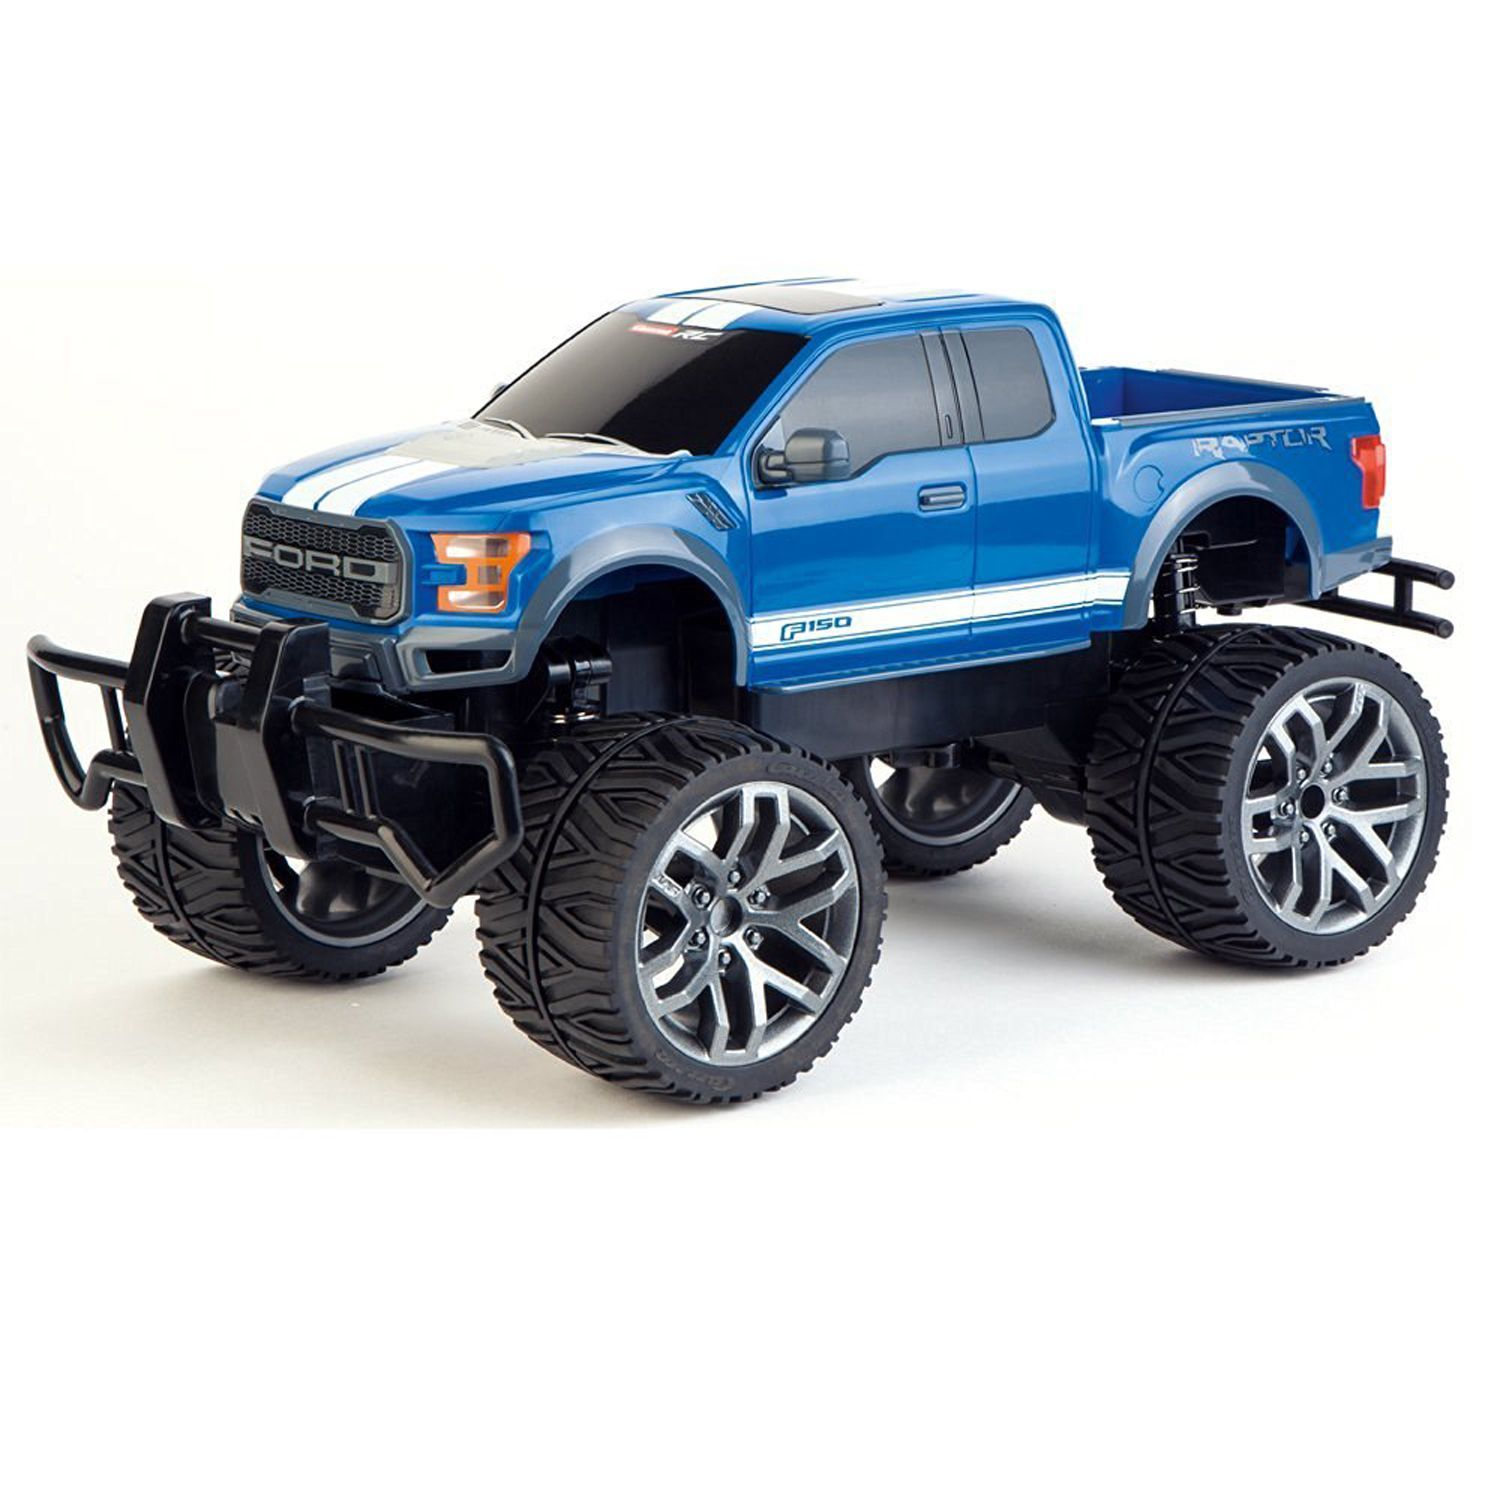 Carrera ford f 150 raptor 1 14 scale radio controlled rc truck